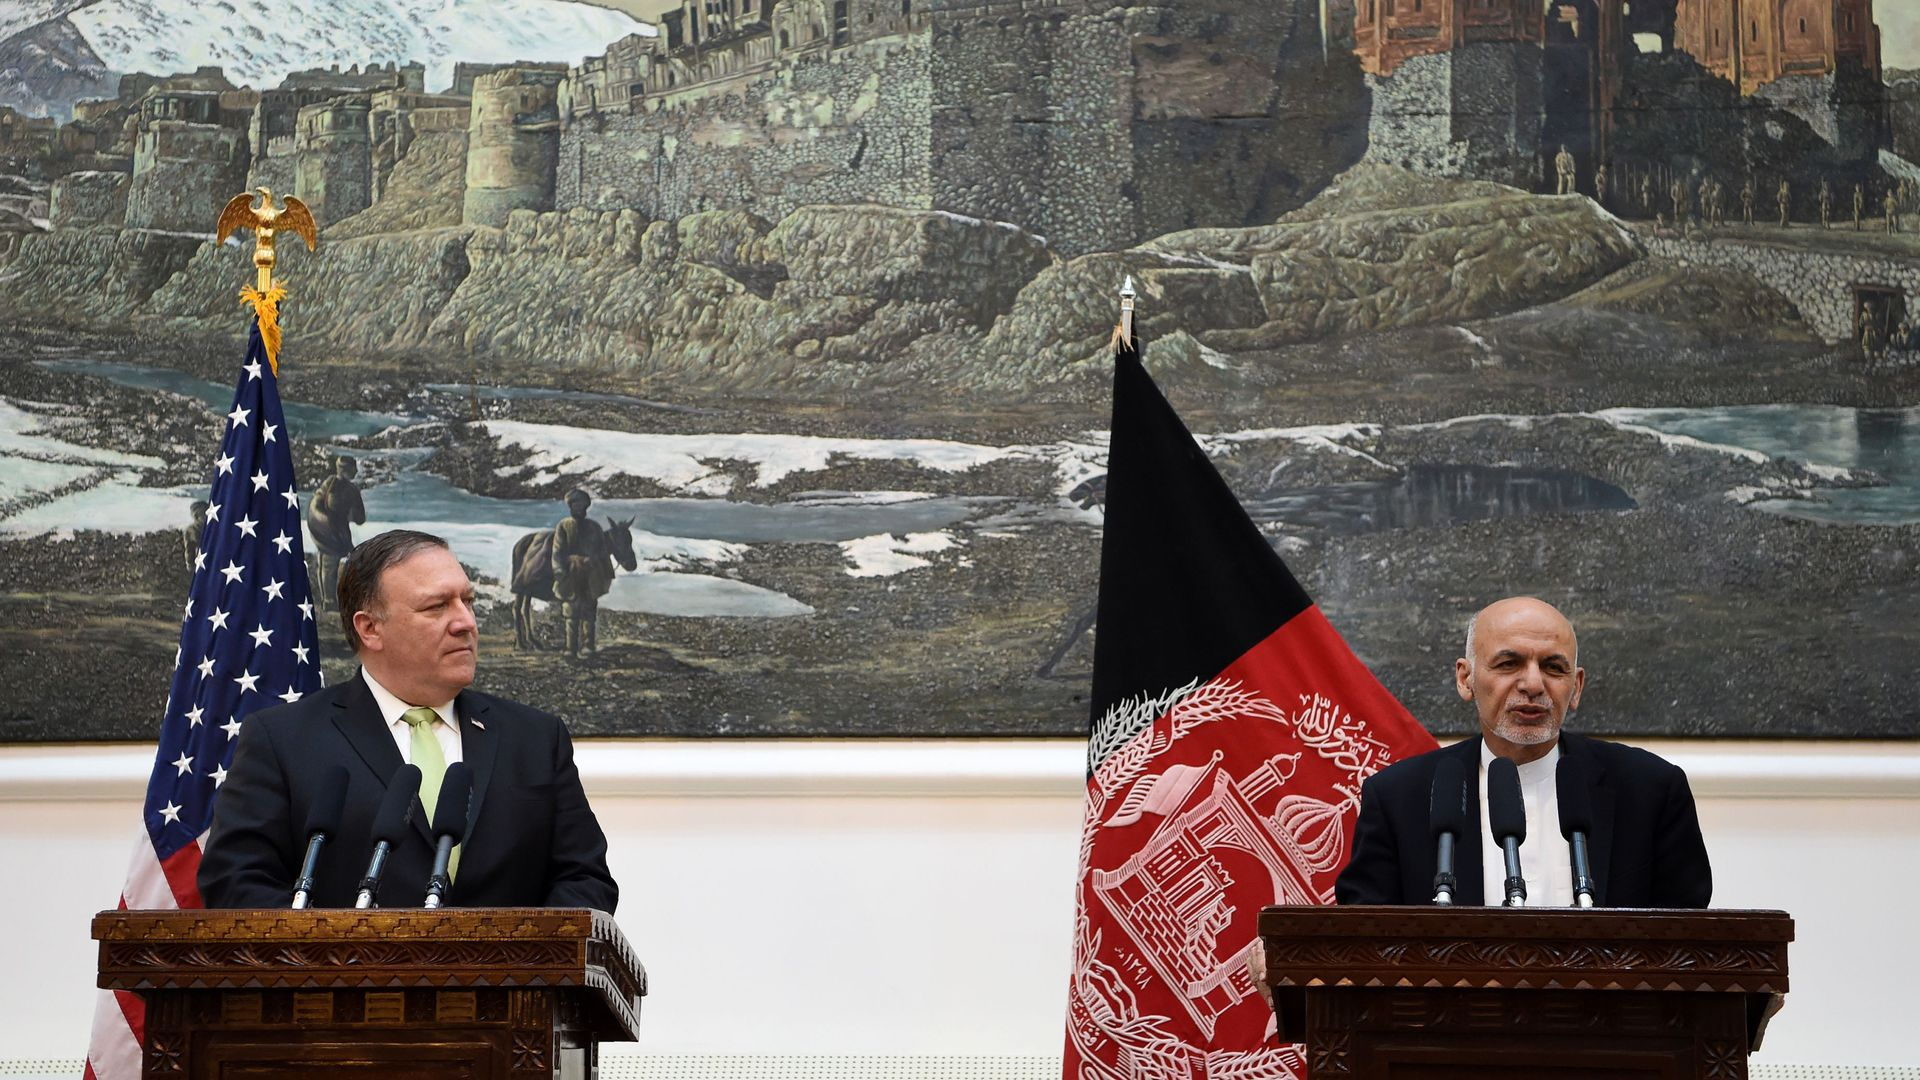 Afghan President Ashraf Ghani with Secretary of State Mike Pompeo